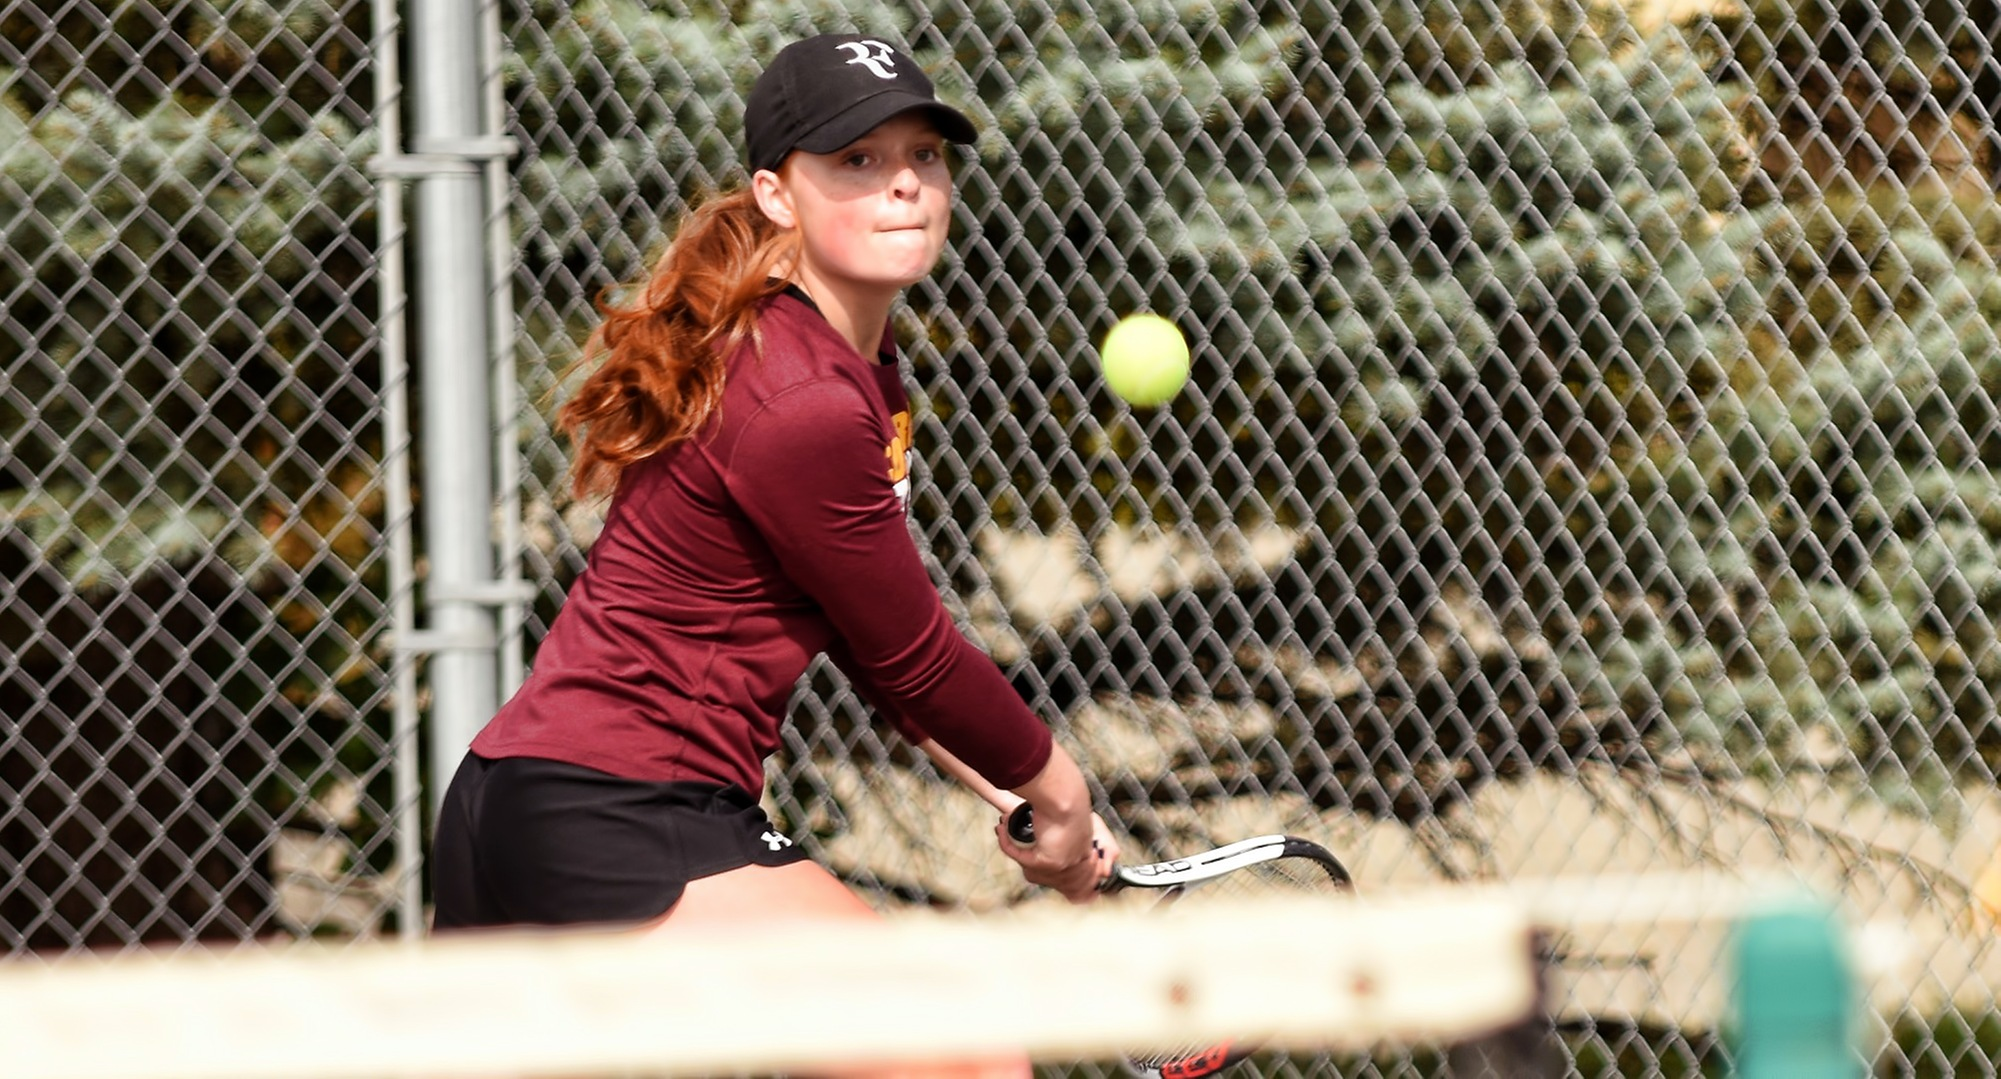 Sophomore Brianna Bell earned one of the five singles wins for the Cobbers against St. Scholastica. Bell now has two wins in her first three matches of the year.